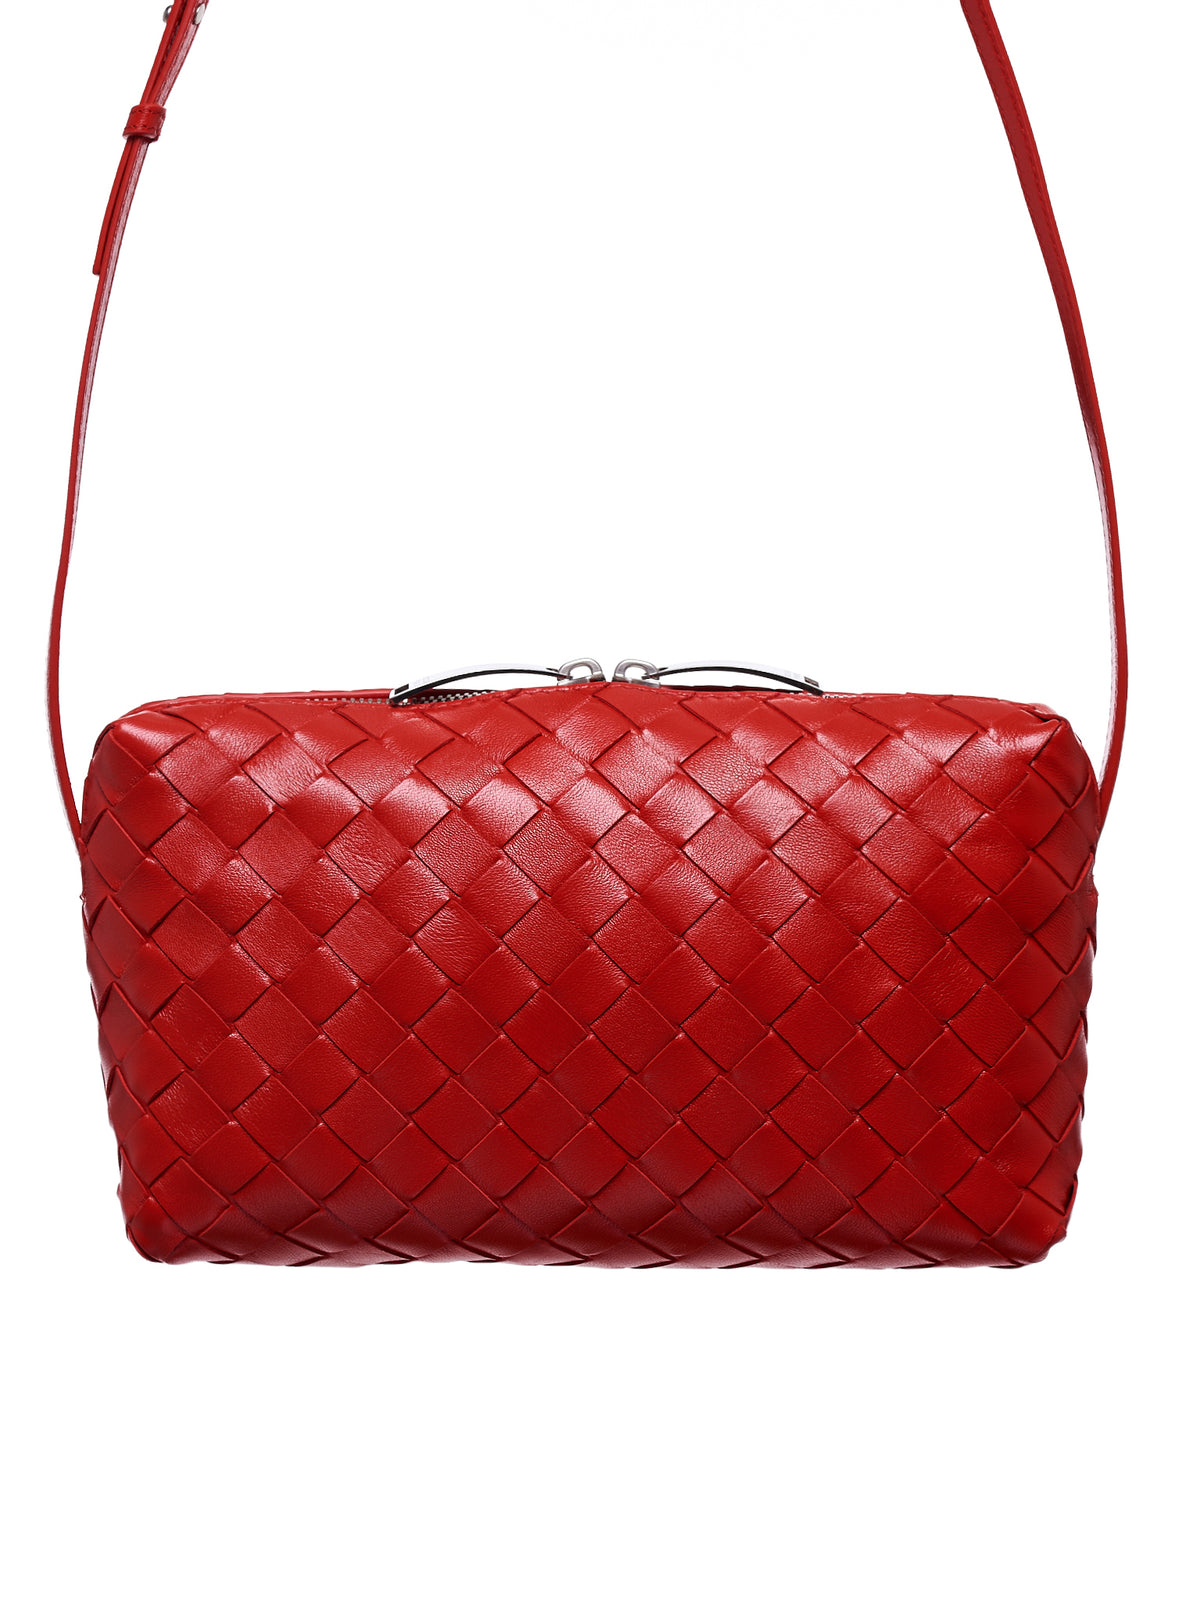 Mini Bag (597329VCPP1-8855-BRIGHT-RED)